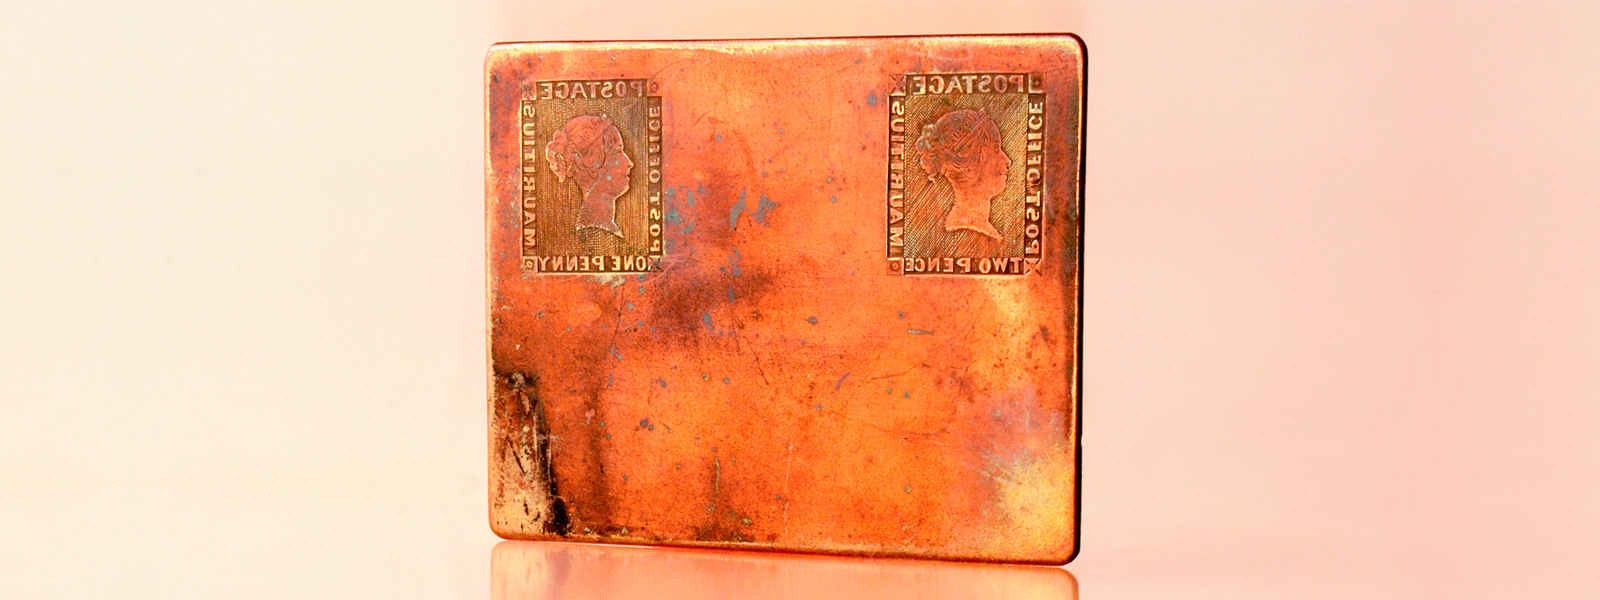 "The Mauritius ""Post Office"" Printing Plate"